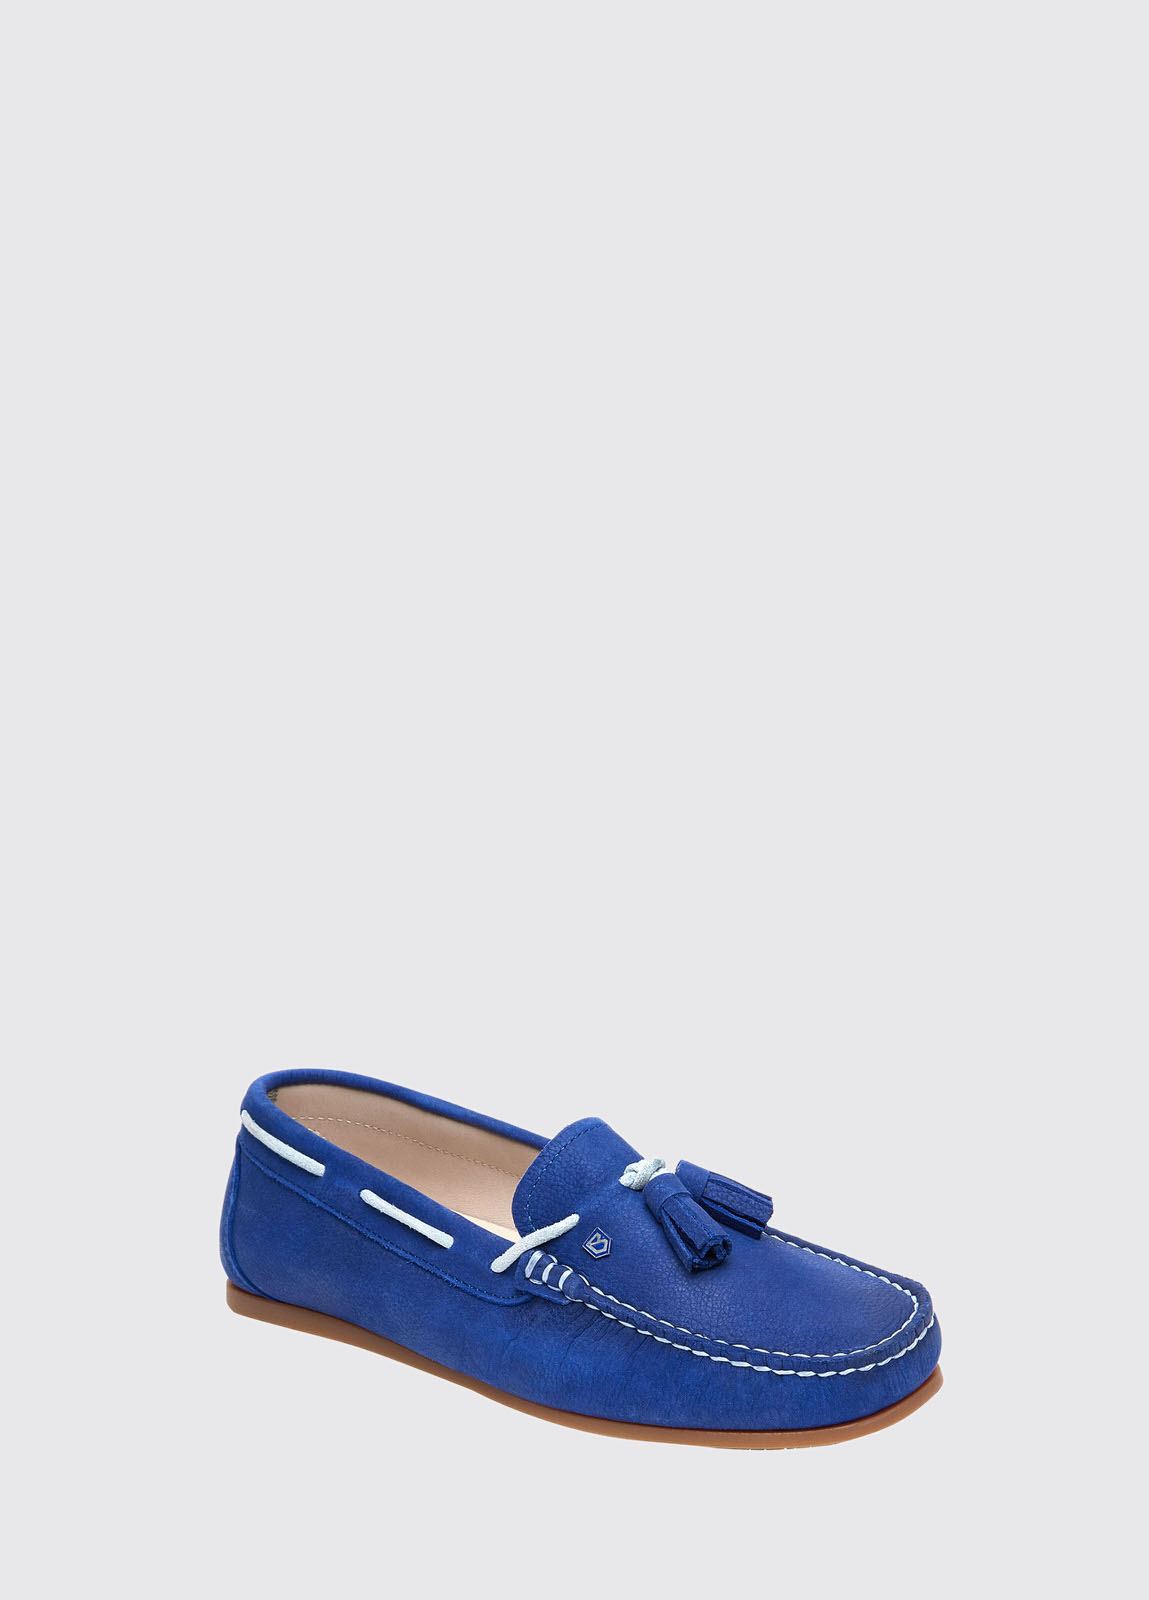 Jamaica Loafer - Cobalt